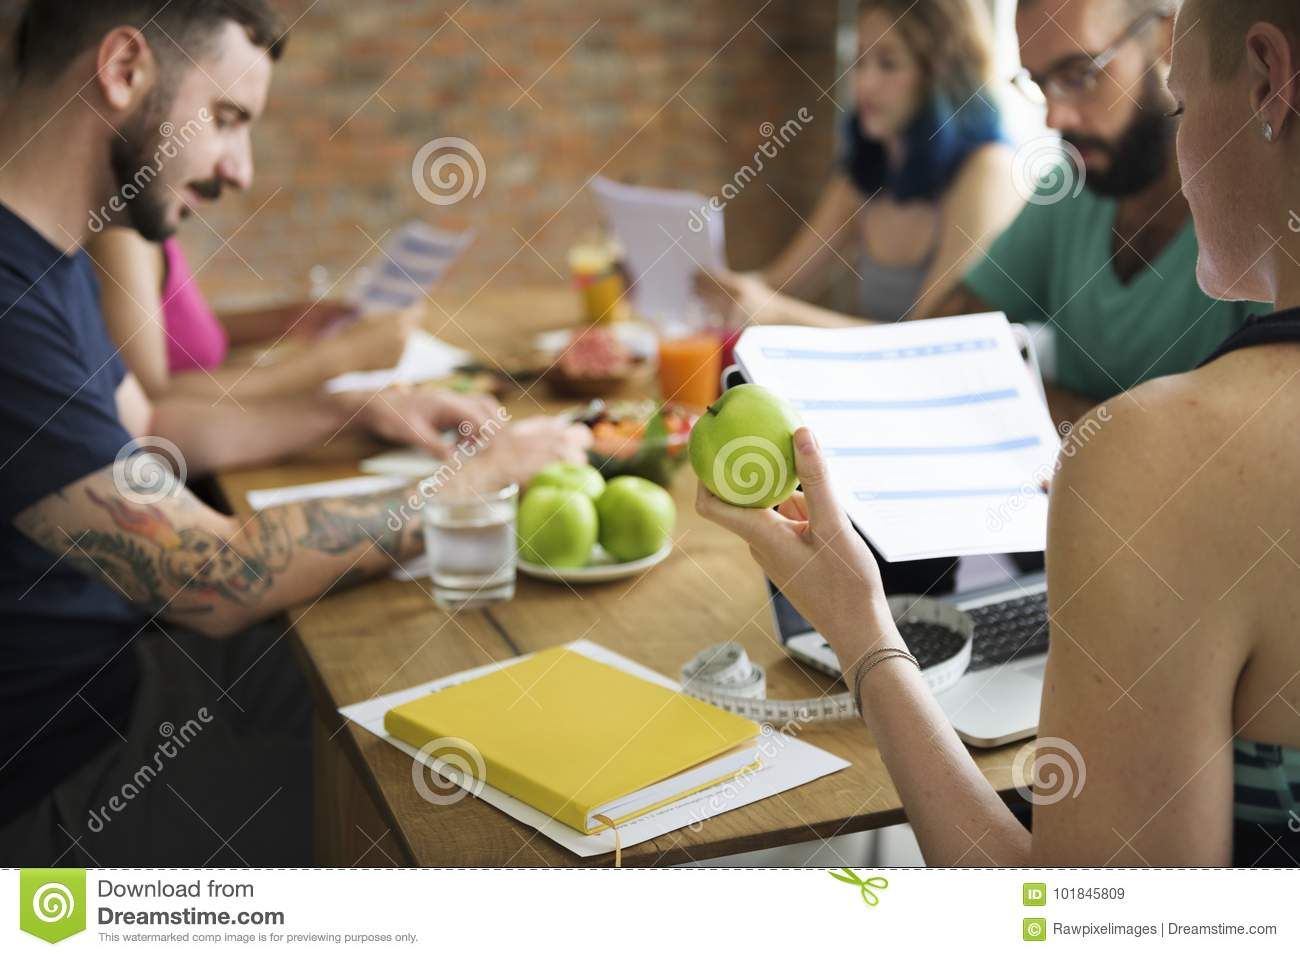 A group of diverse healthy people studying health form together